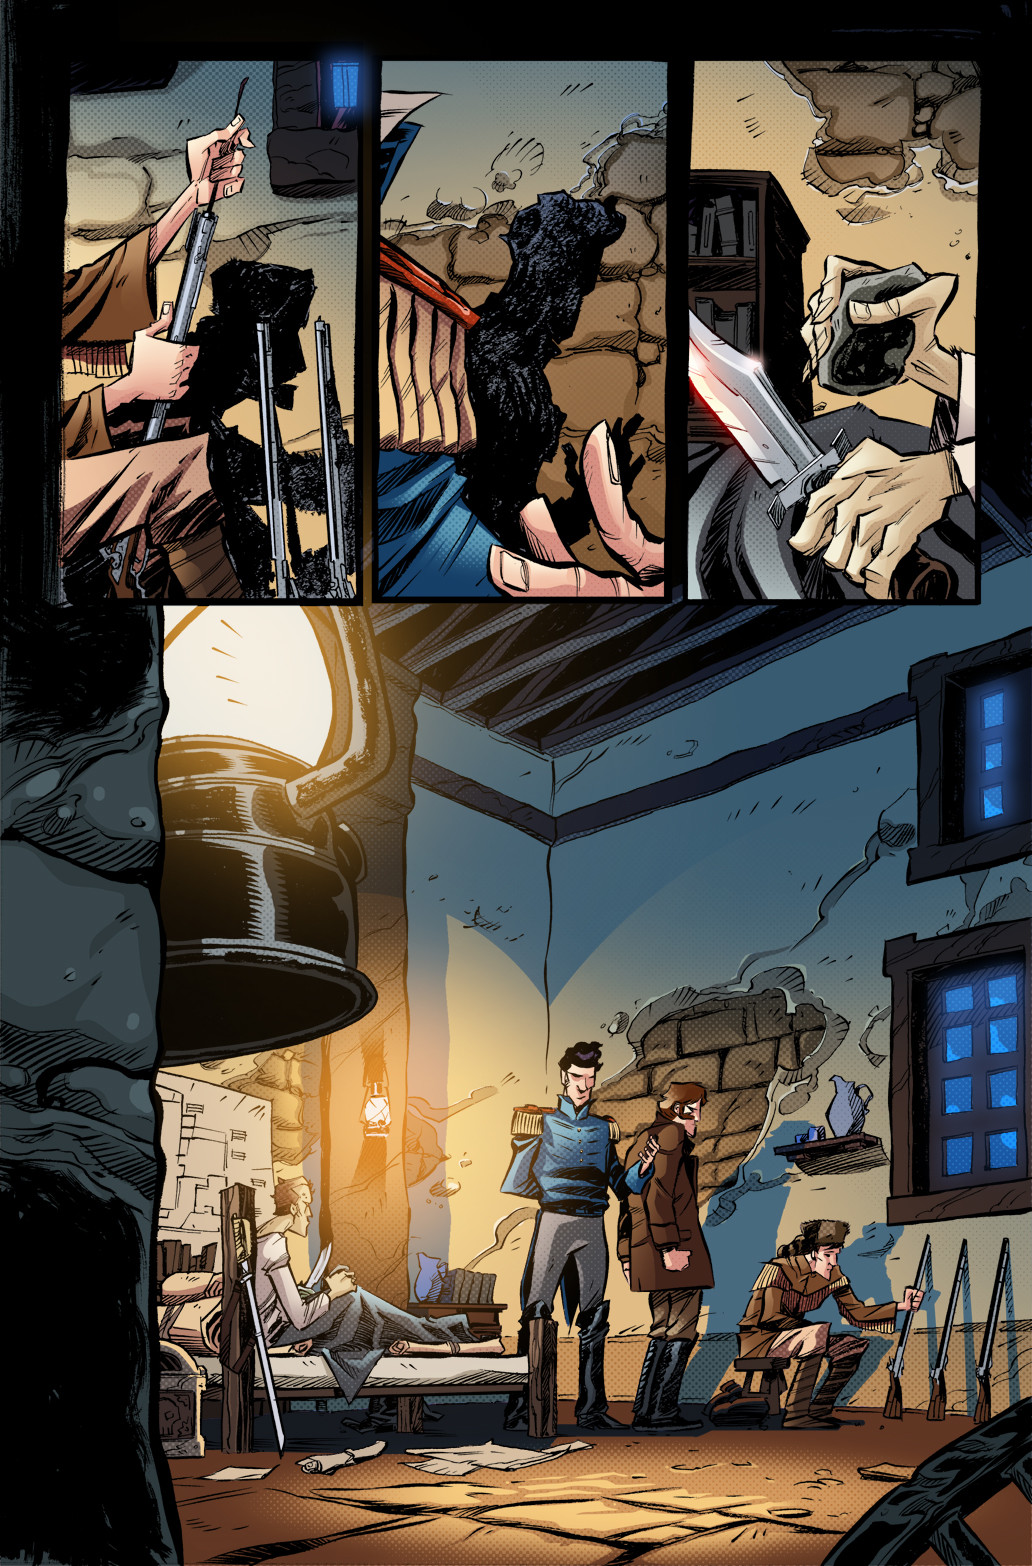 GONERS - #3, page 1